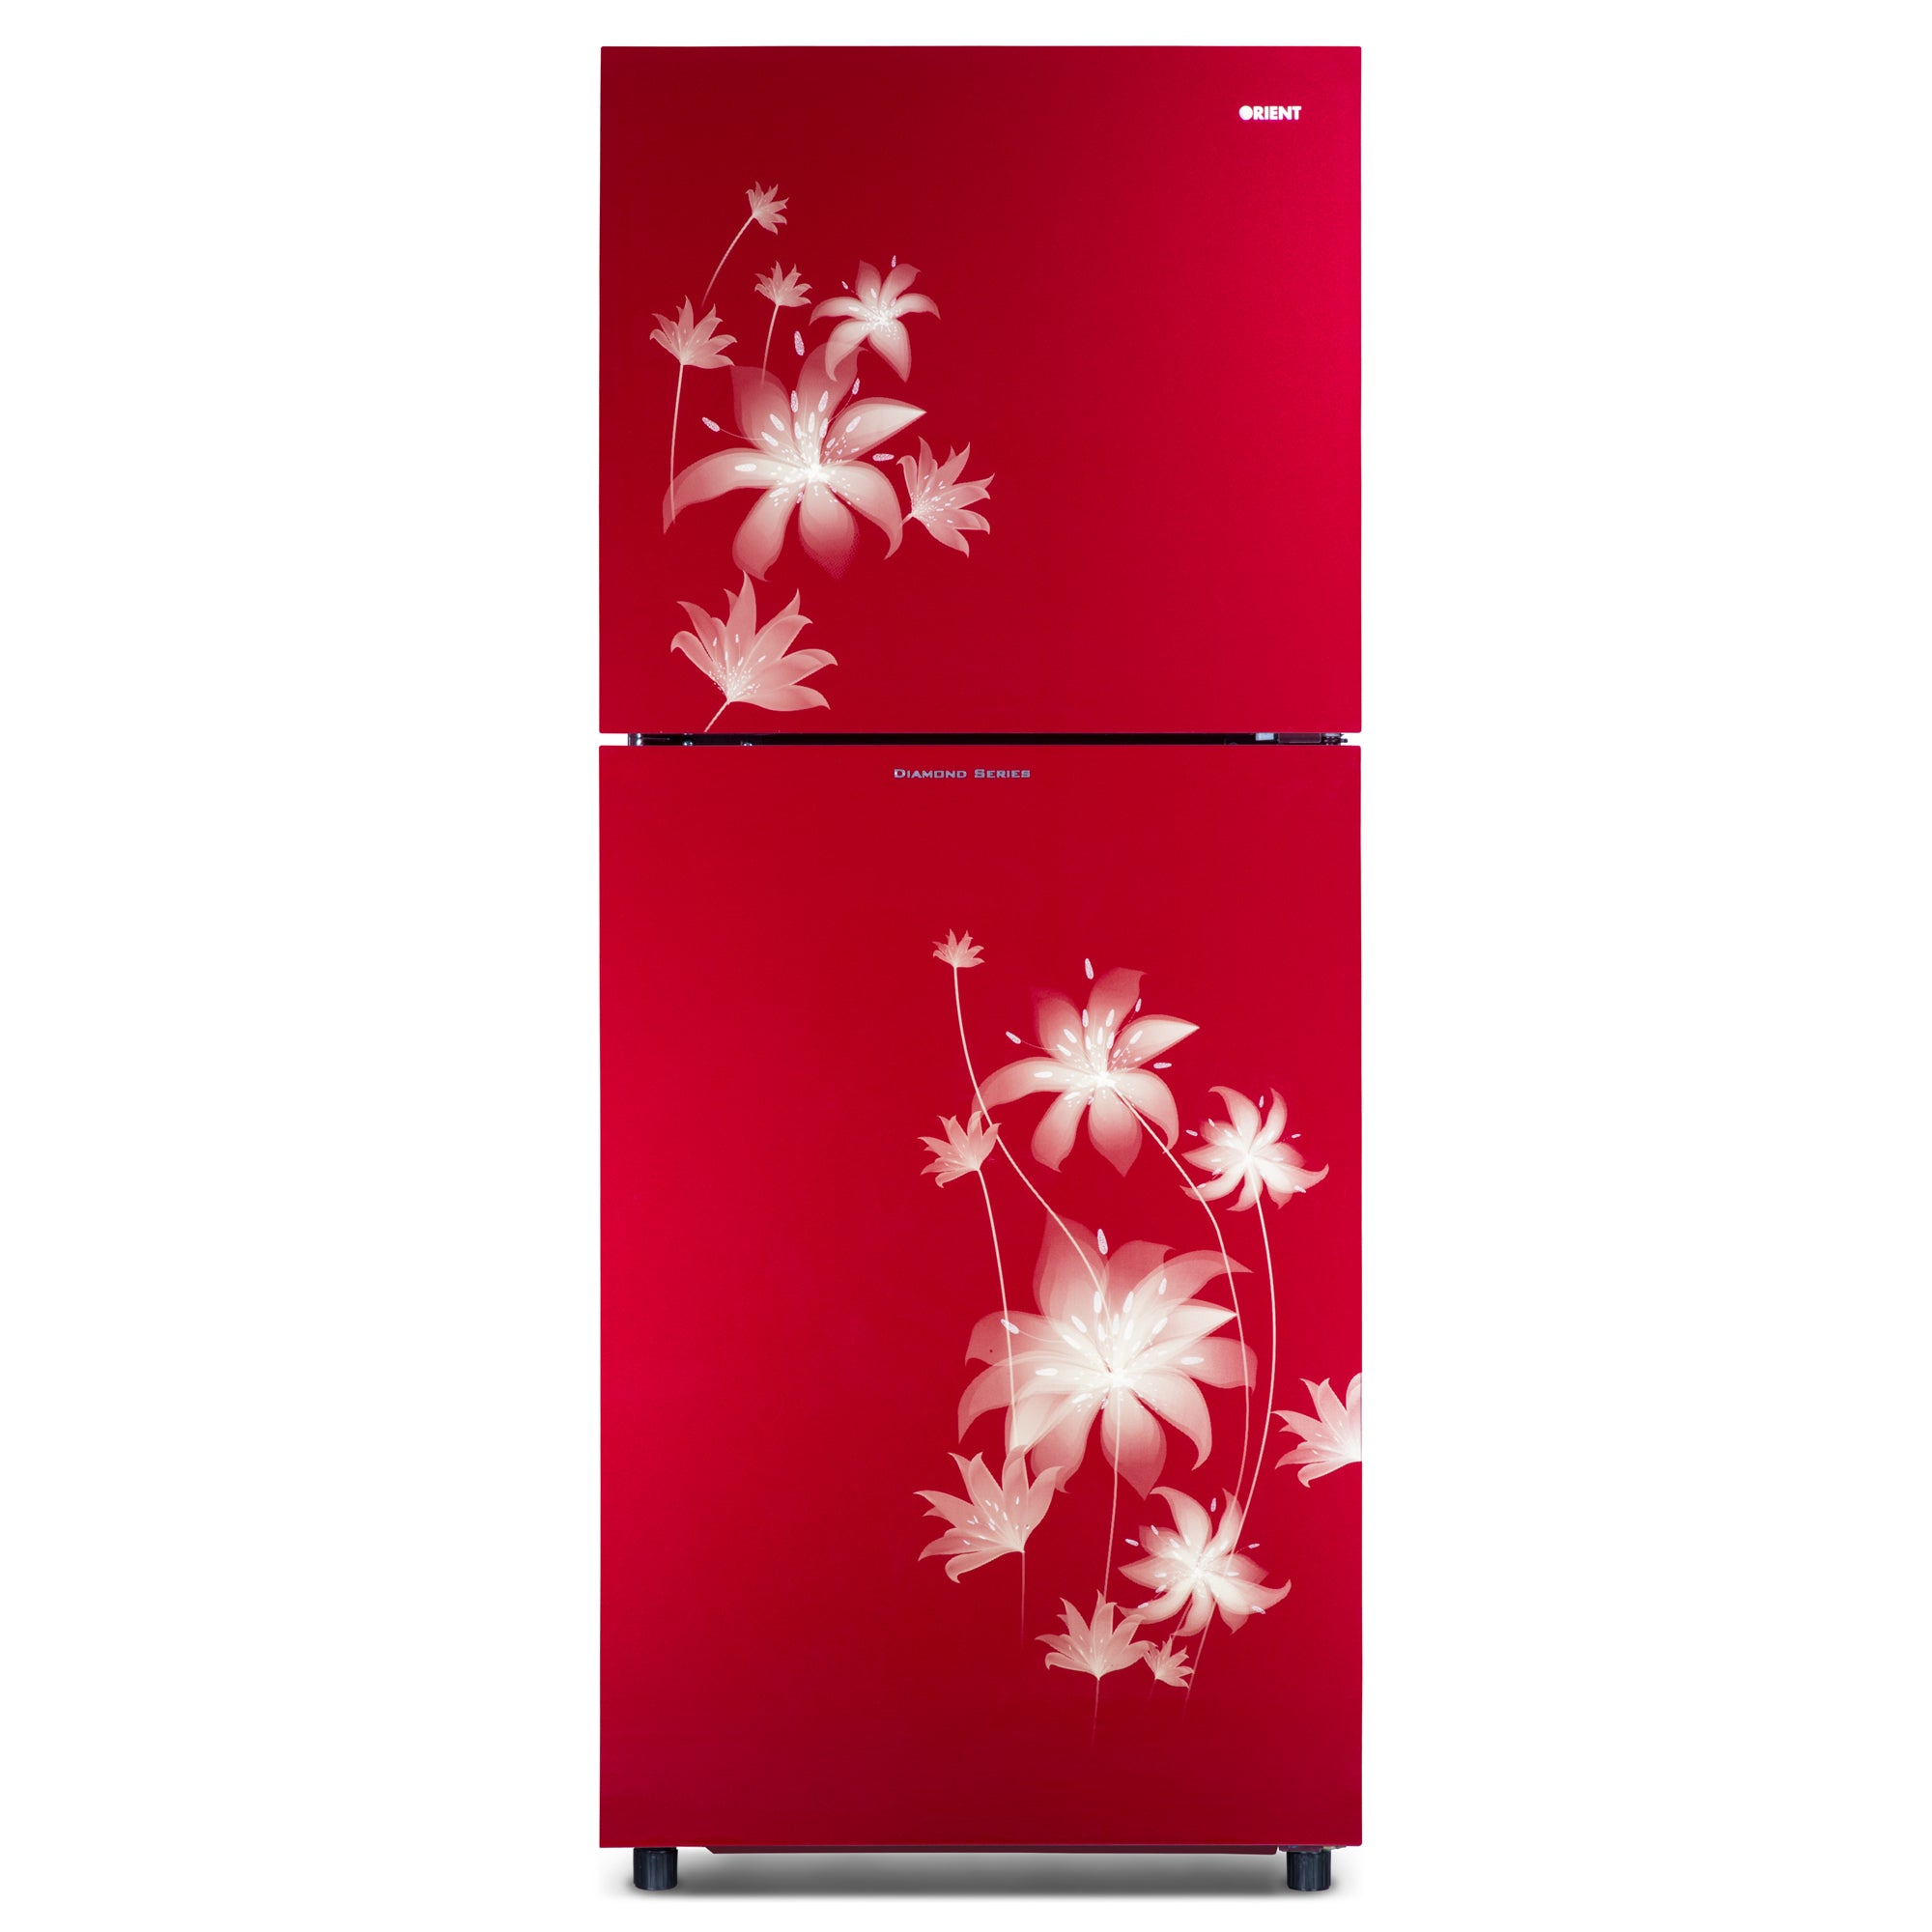 Orient Diamond 350 Liters Refrigerator